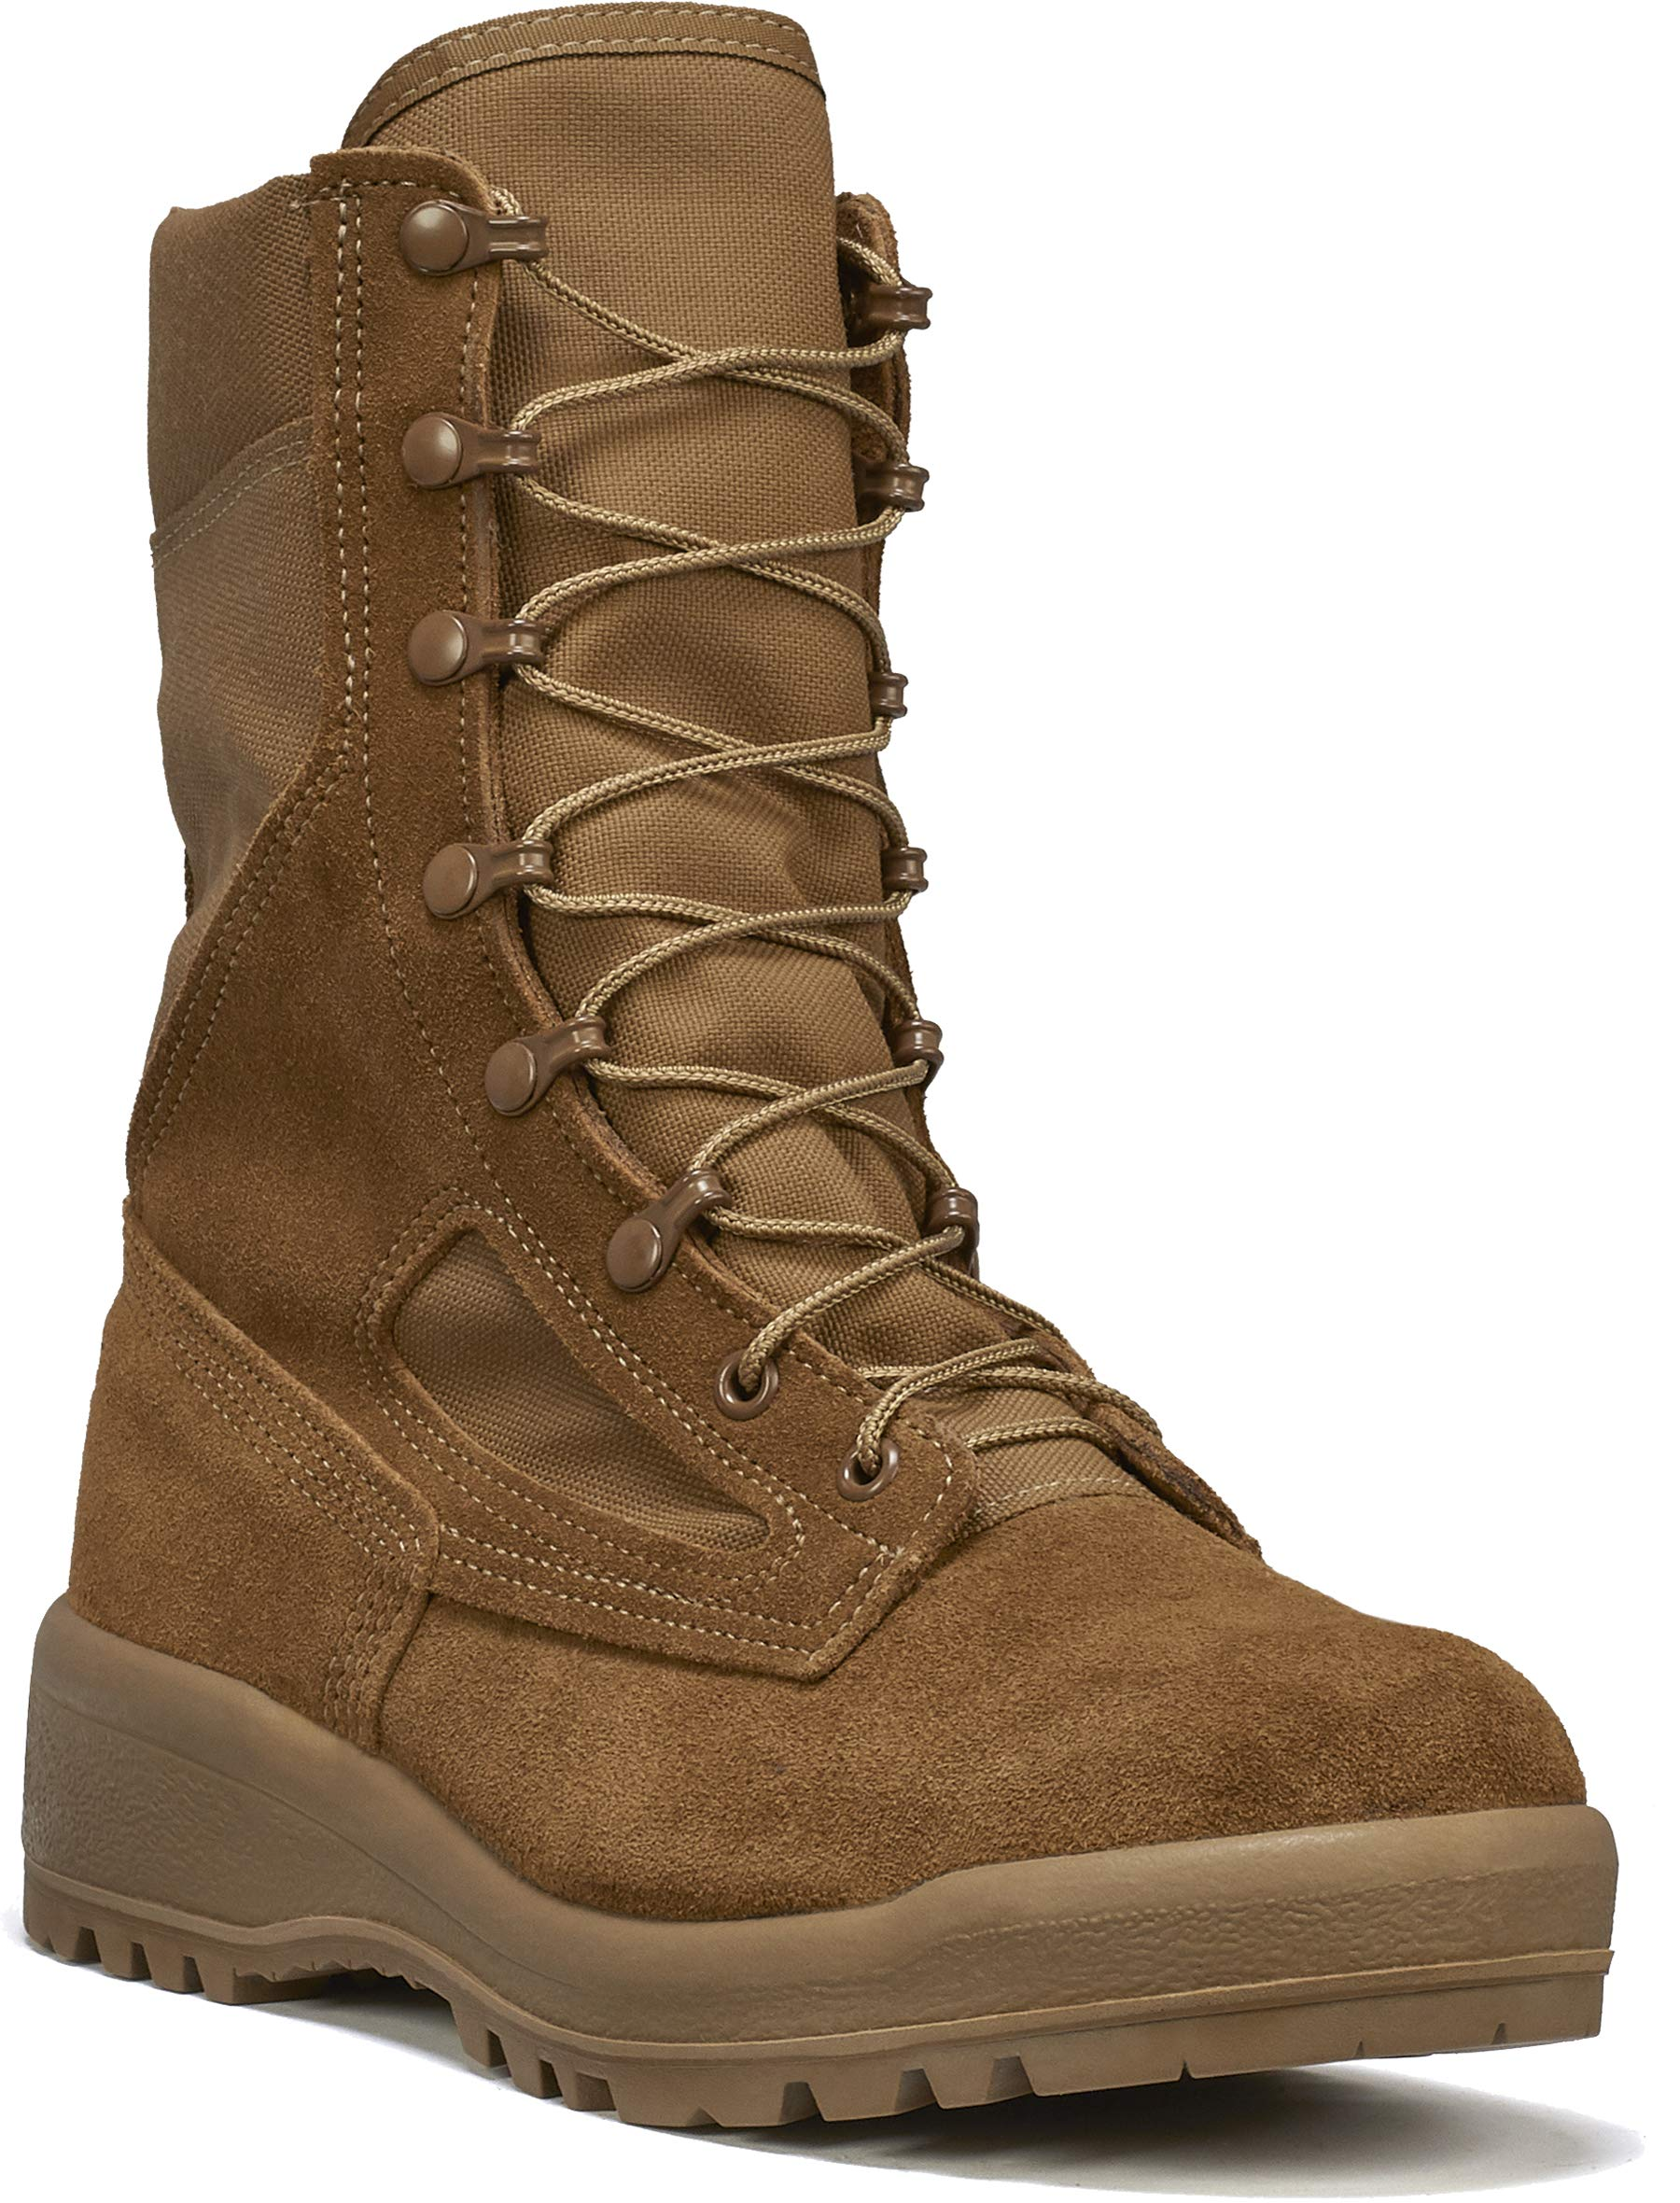 Bates Men's Ranger Ii Hot Weather Composite Toe Military & Tactical Boot